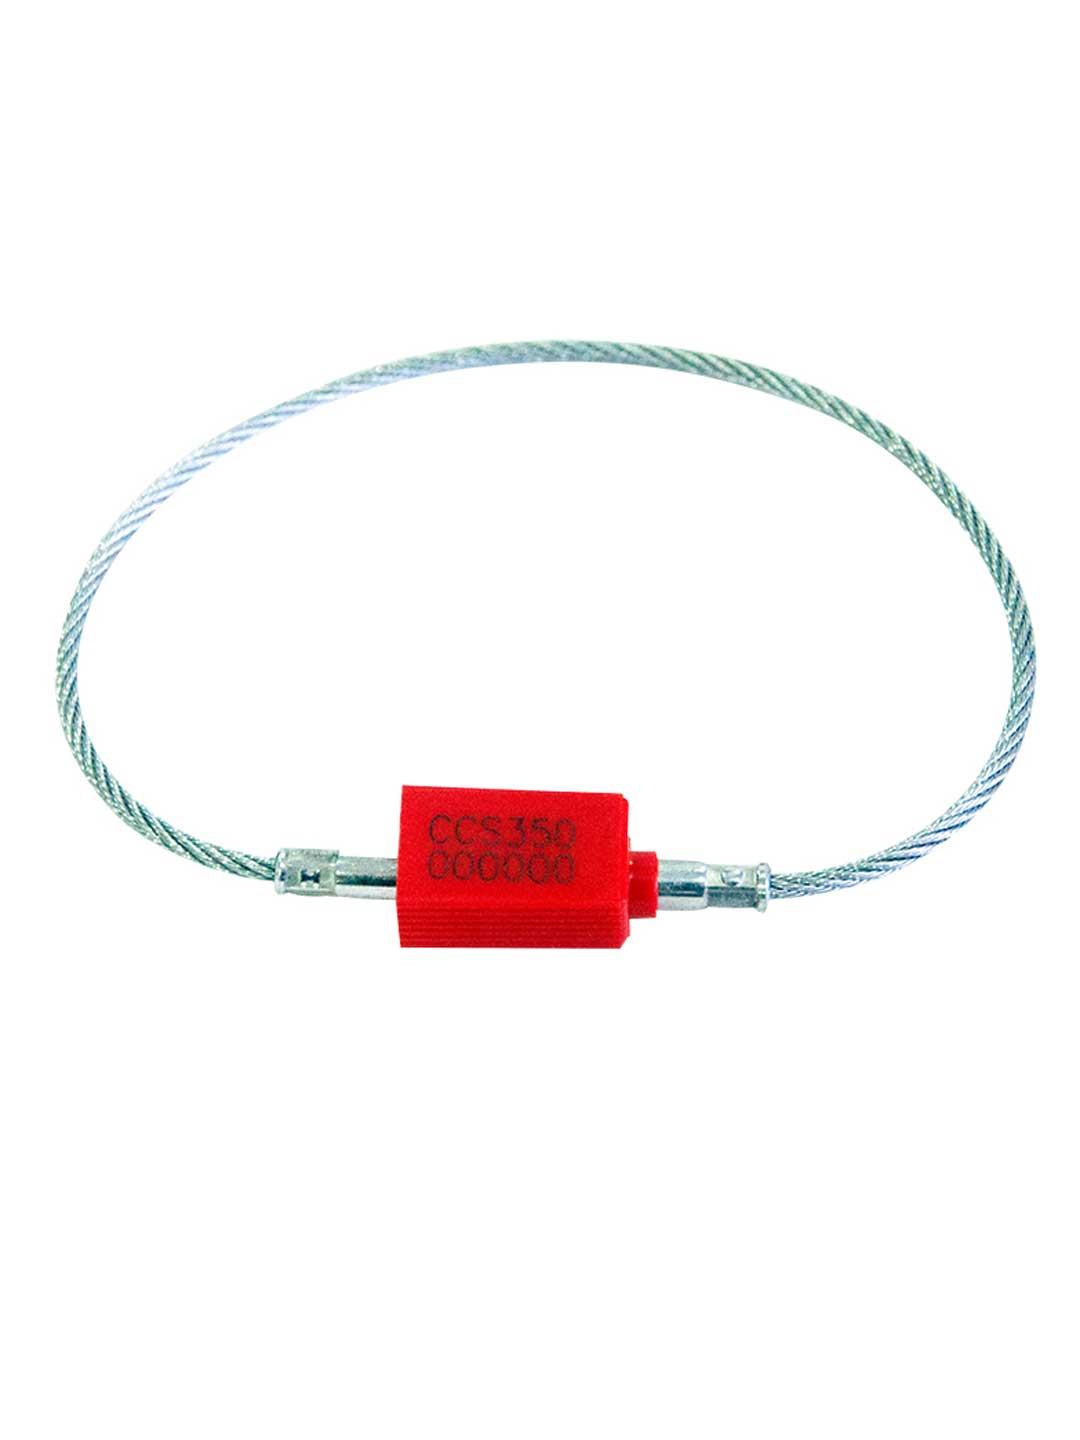 High Security Carrier Cable Seal 350